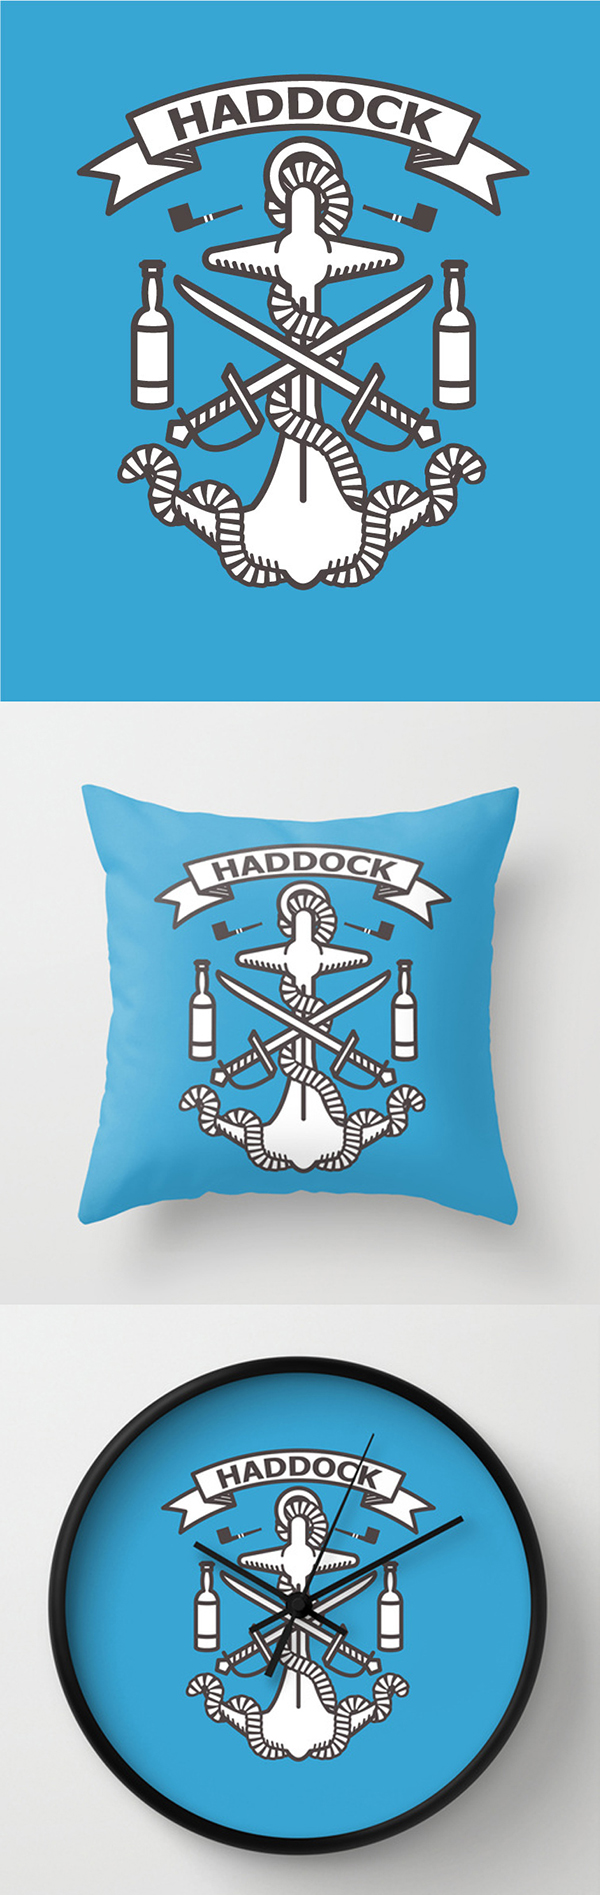 Prints and products of Captain Hddock